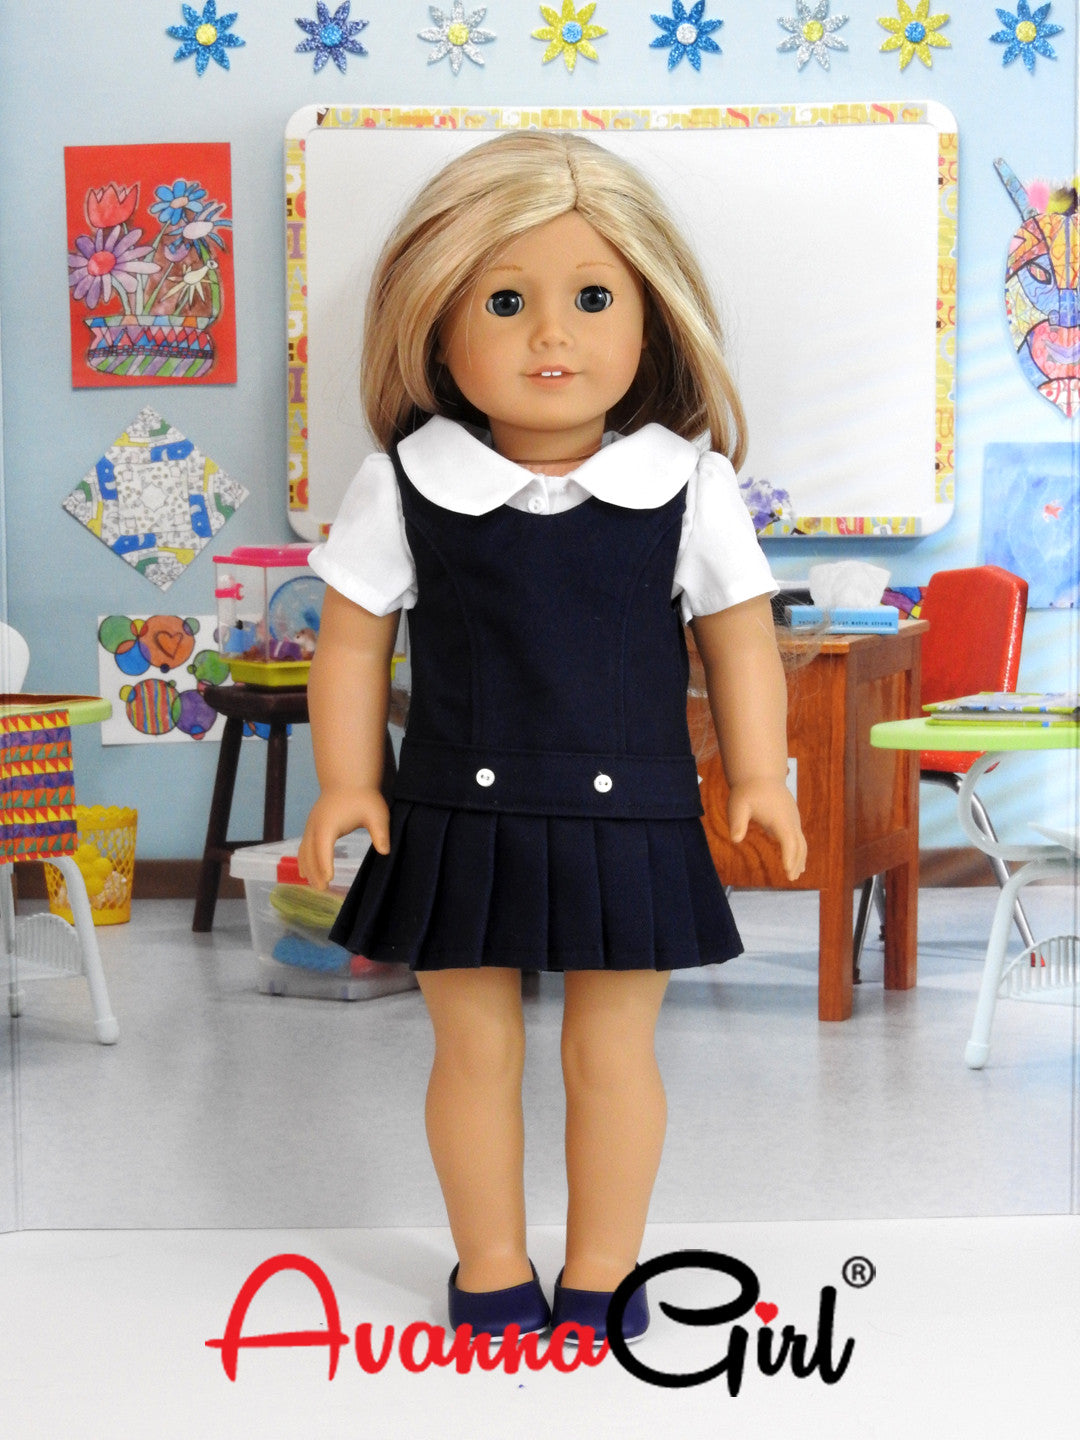 American Girl Doll Handmade Back to School Uniform - Navy Jumper, White Blouse